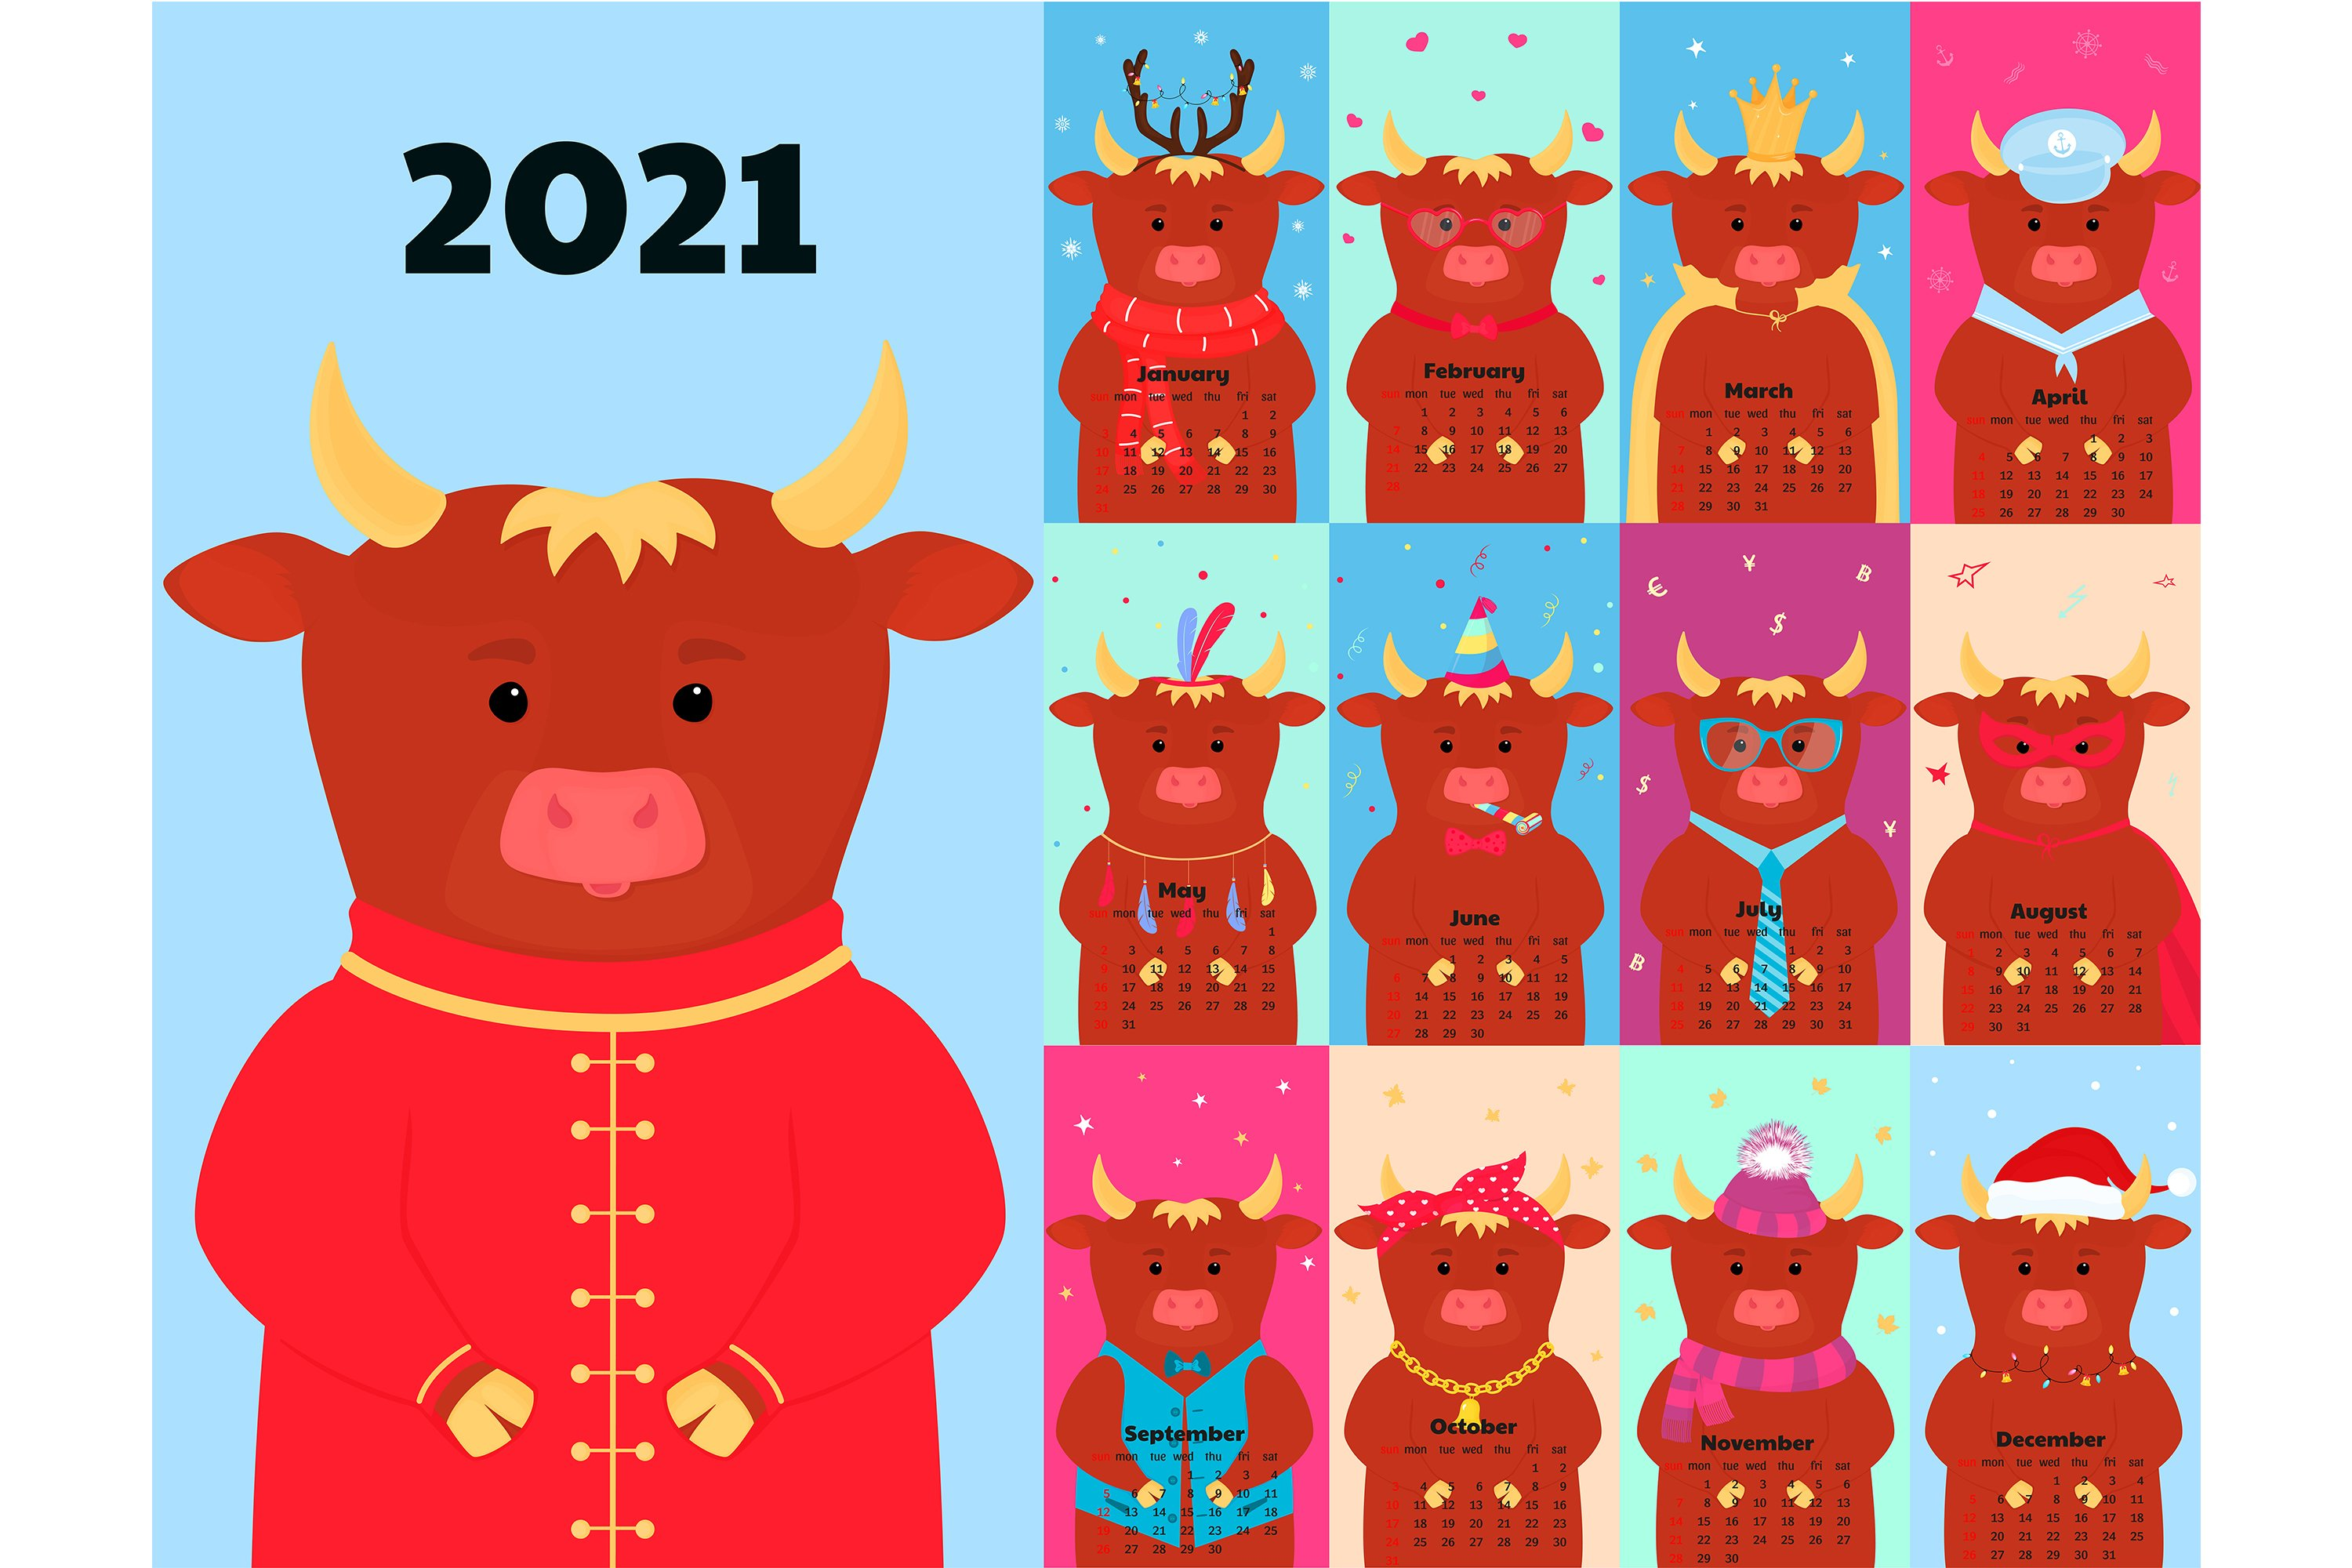 Download Calendar For 2021 With Funny Ox In A Variety Of Costumes 1078229 Illustrations Design Bundles